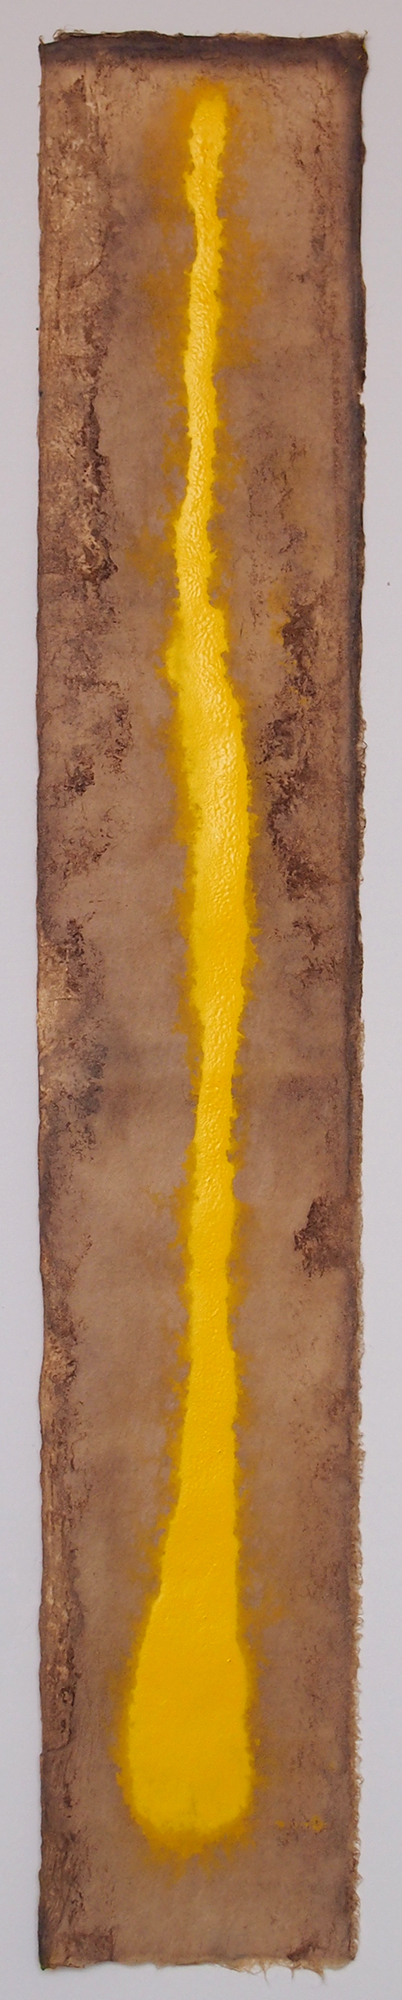 LINDA THARP On Paper 25 x 4.25 inches, 2013